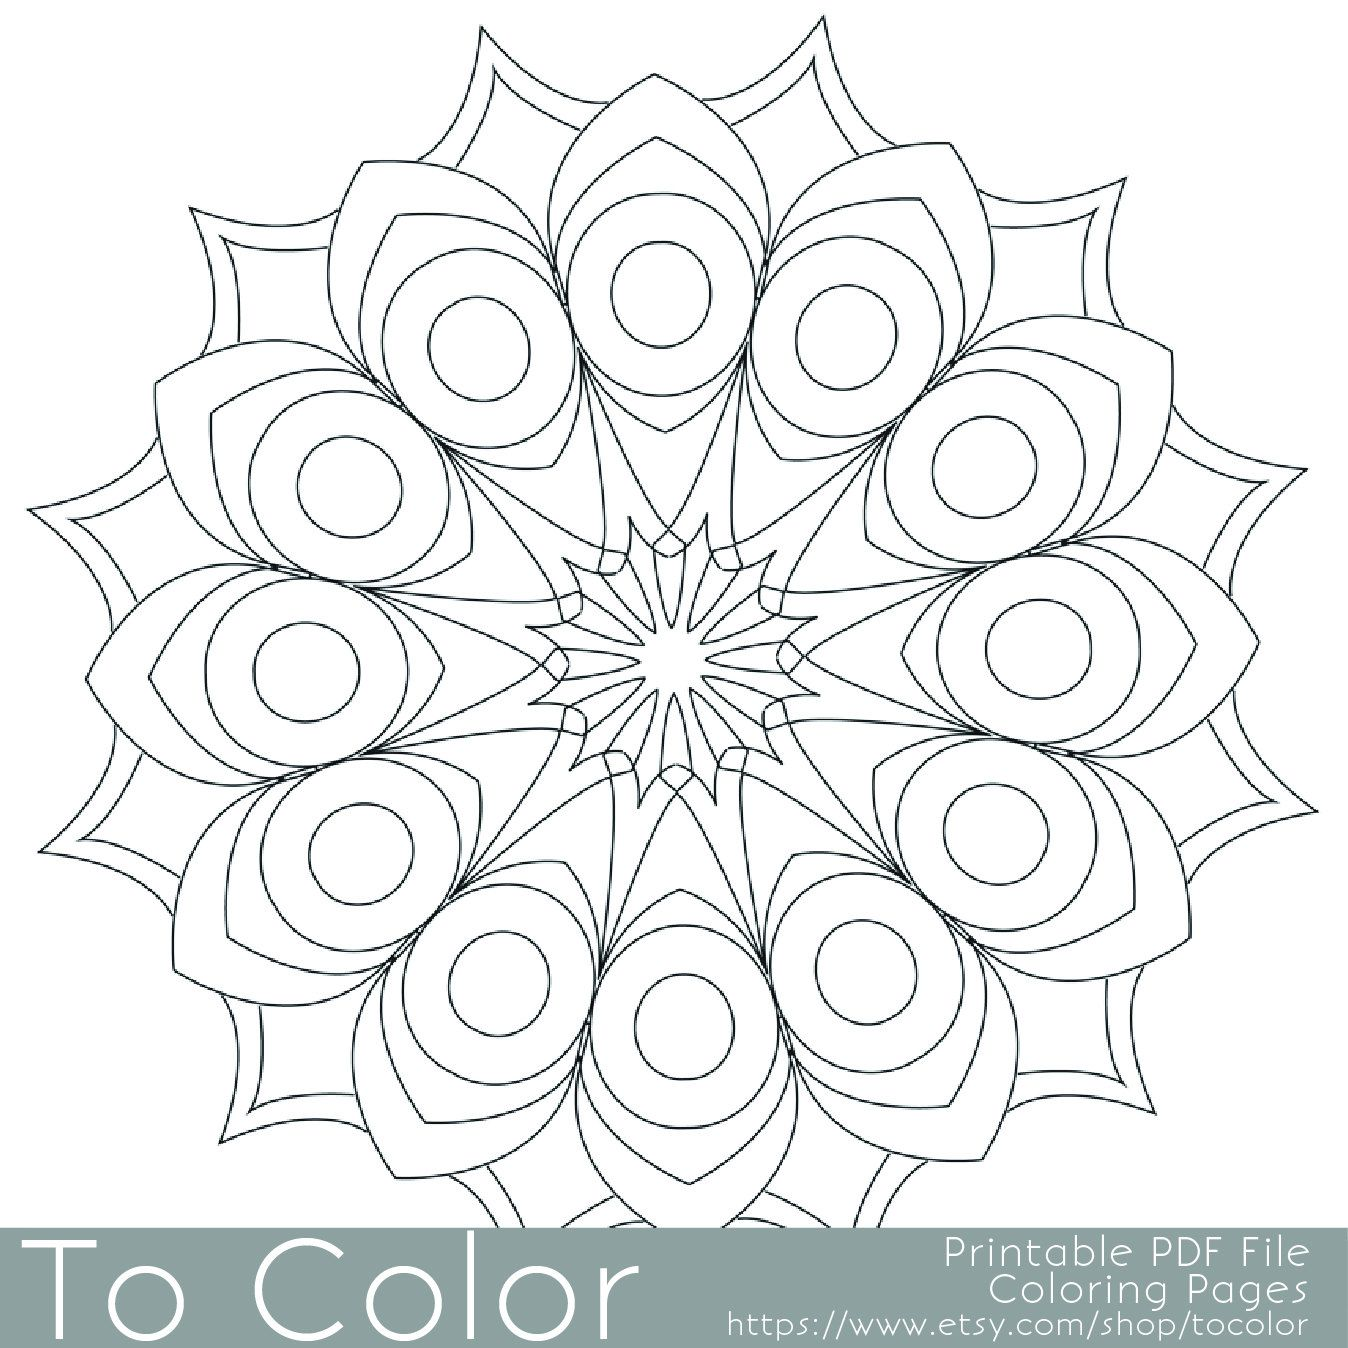 Printable Circular Mandala Easy Coloring Pages For Adults Big Spaces Pdf Jpg Insta Geometric Coloring Pages Mandala Coloring Pages Abstract Coloring Pages